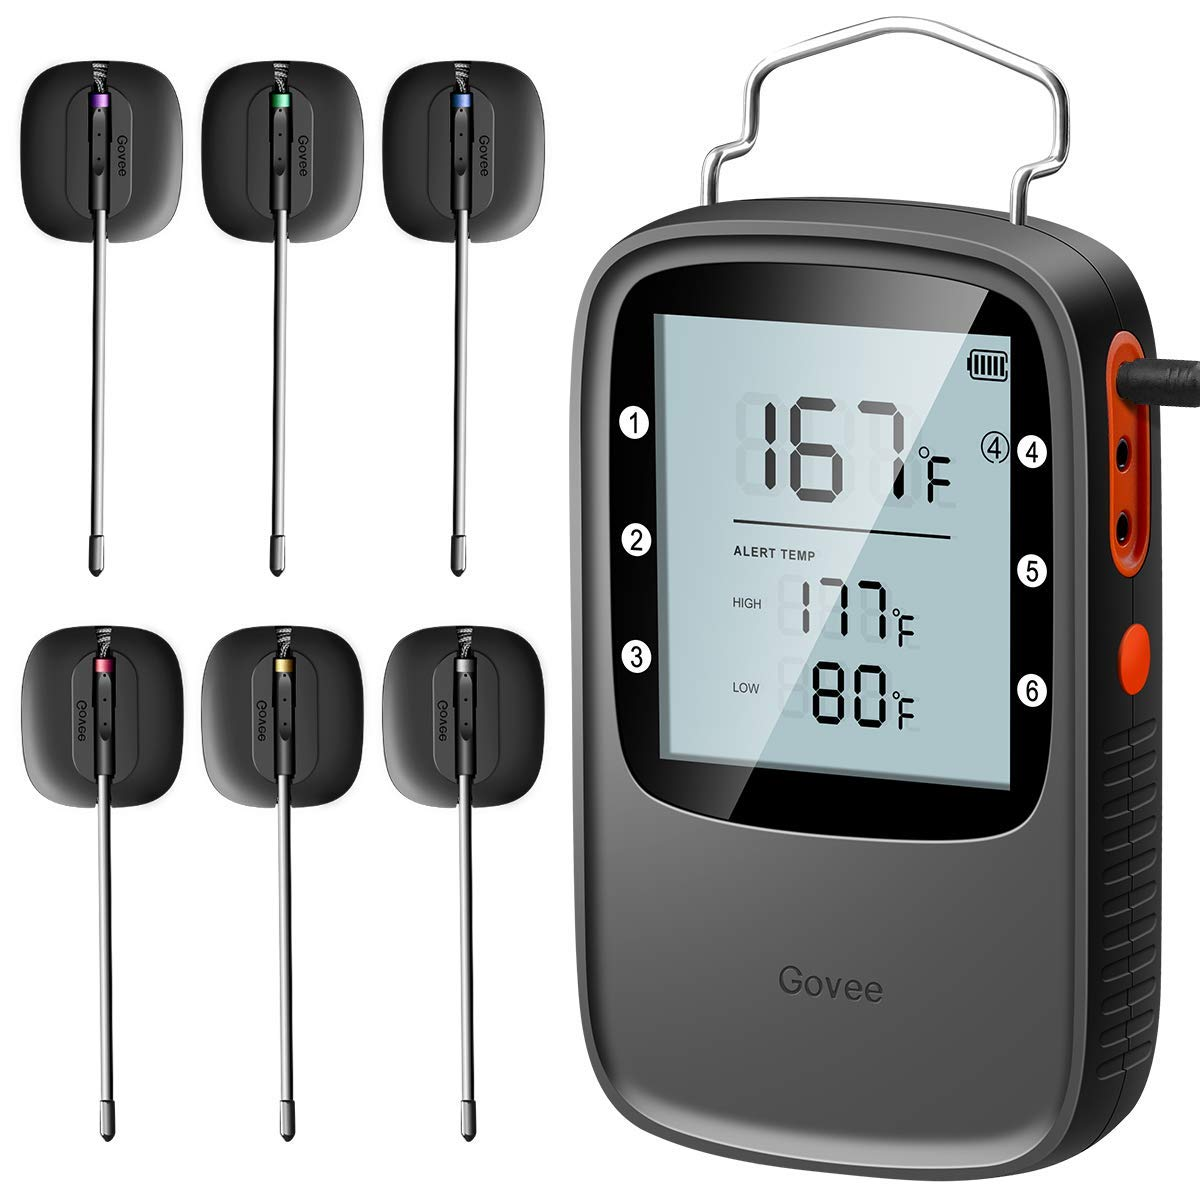 Bluetooth Cooking Thermometer, Govee Digital Meat Thermometer with Dual IPX7 Waterproof Probes, Remote Wireless BBQ Thermometer with Timer for Grilling Smoker Oven(164ft Working Range) by Govee